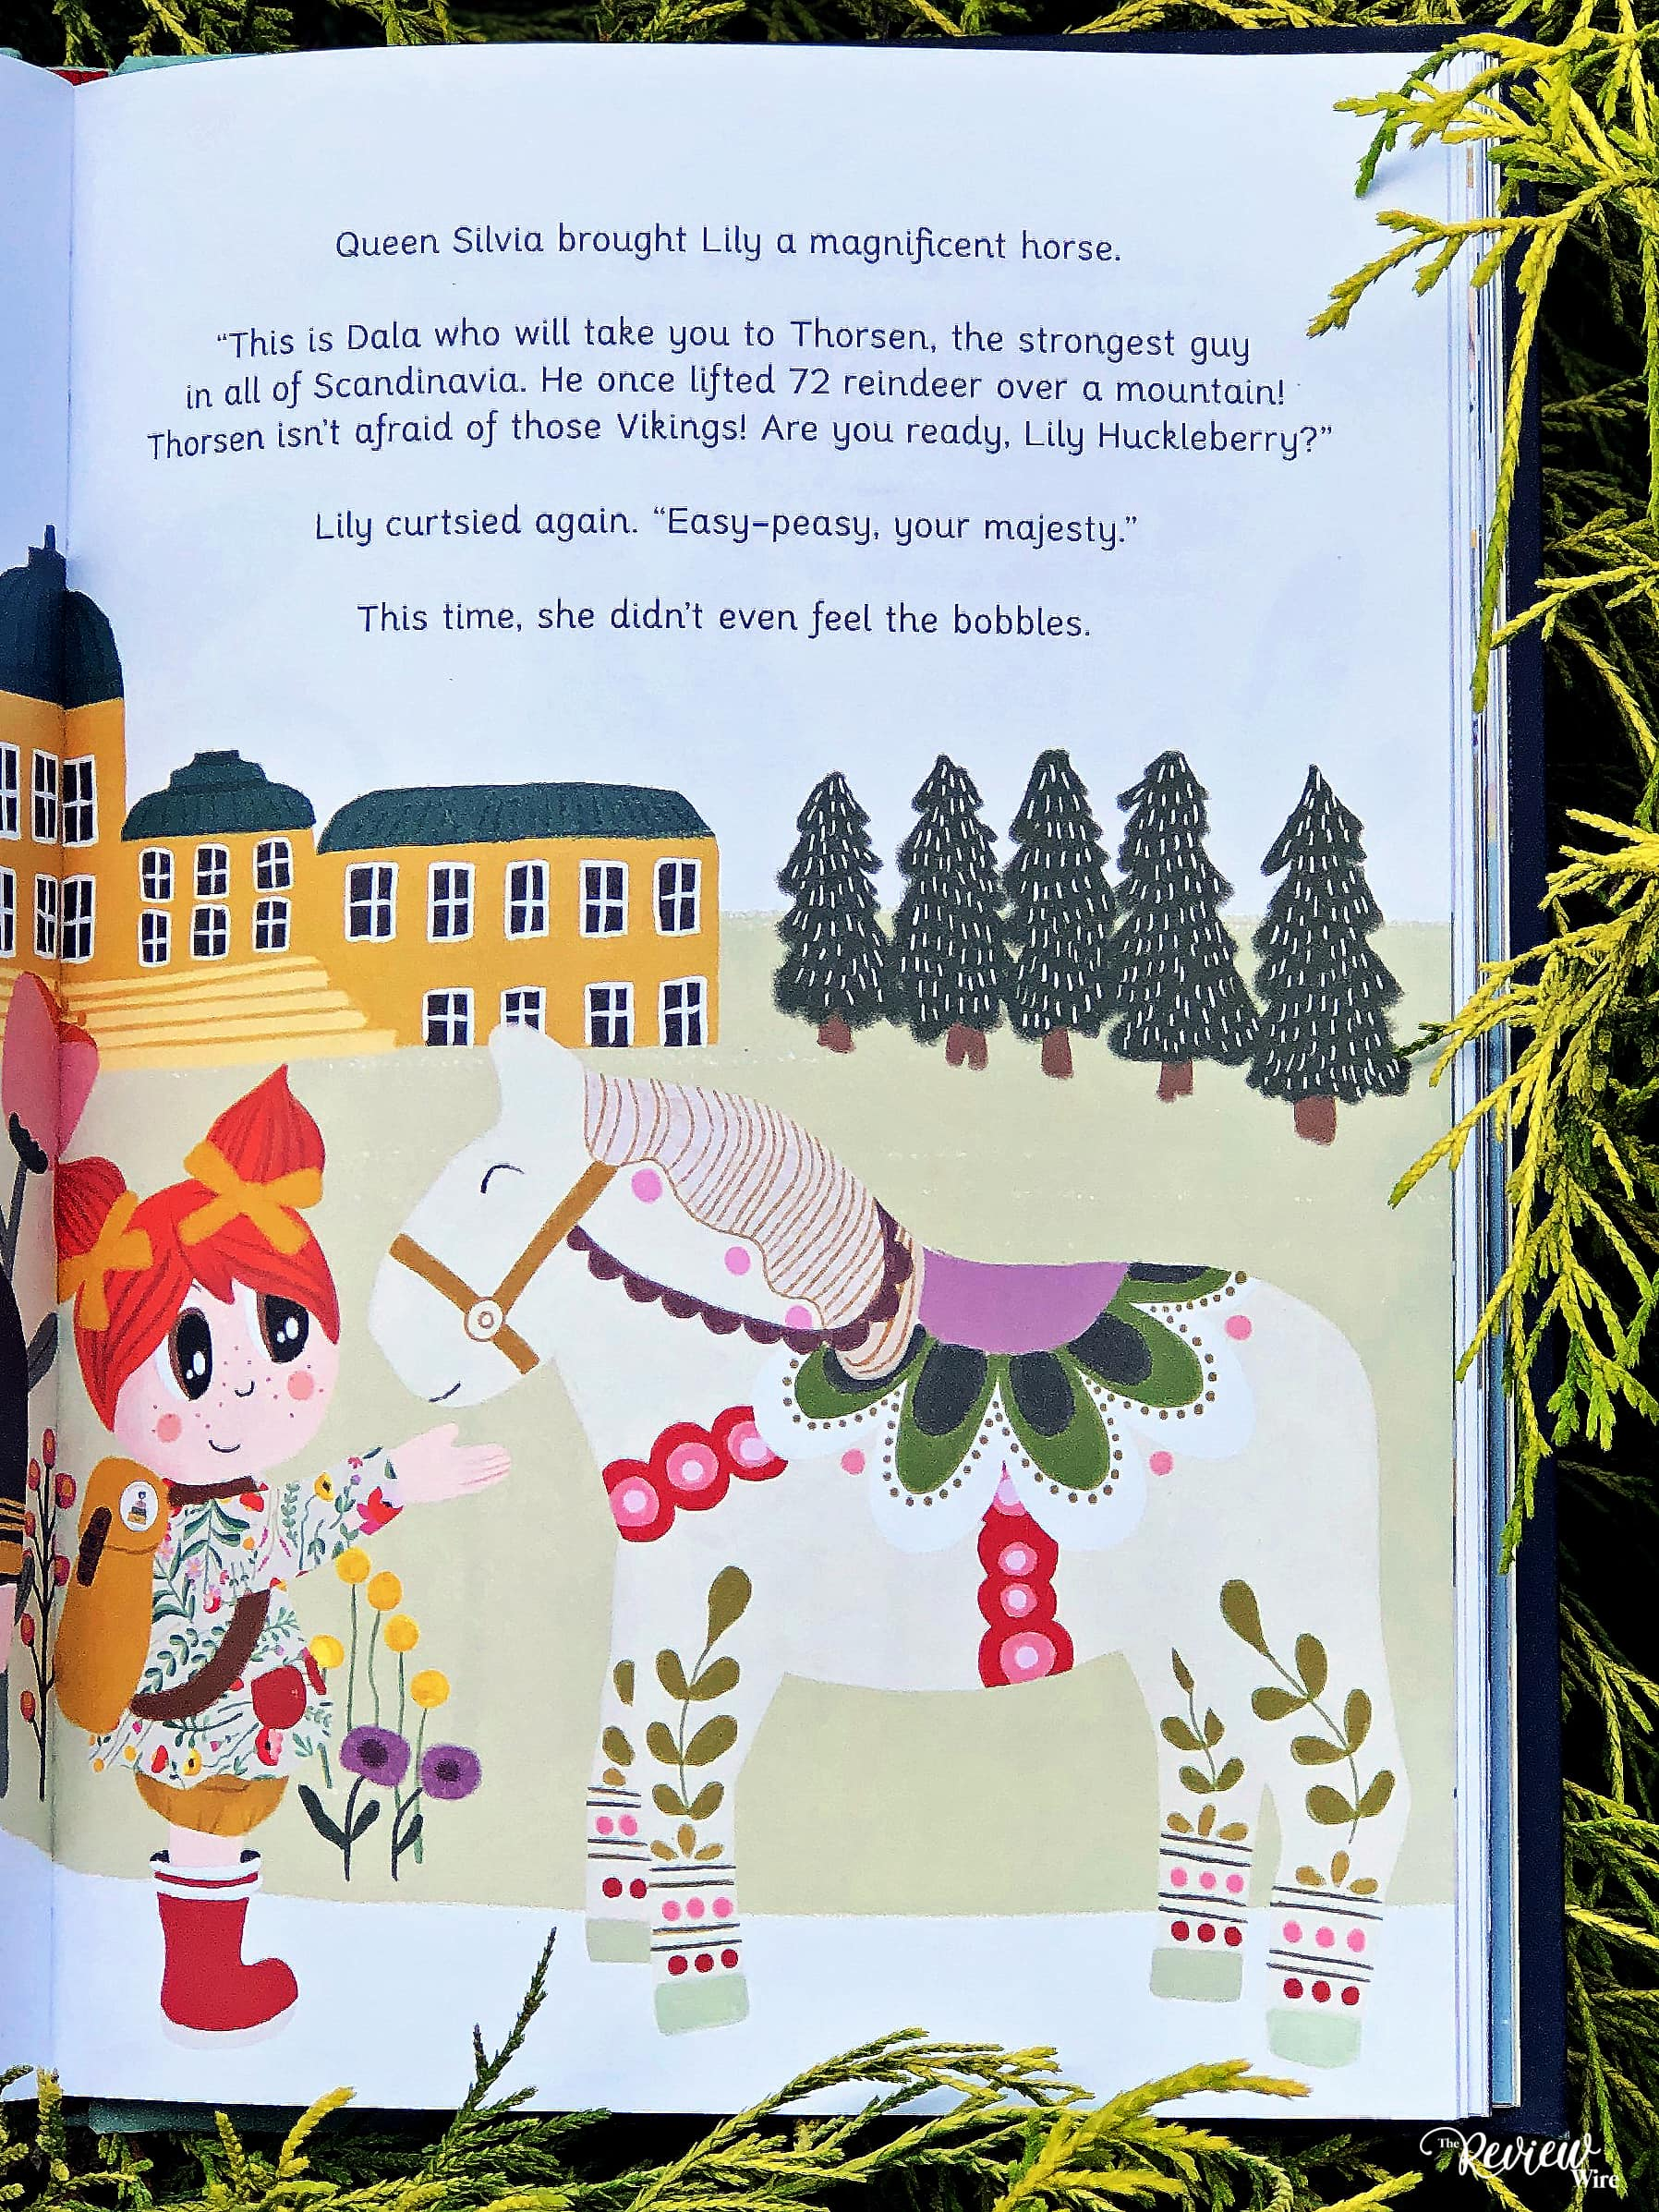 The Review Wire: The Adventures of Lily Huckleberry in Scandinavia - Pg 55